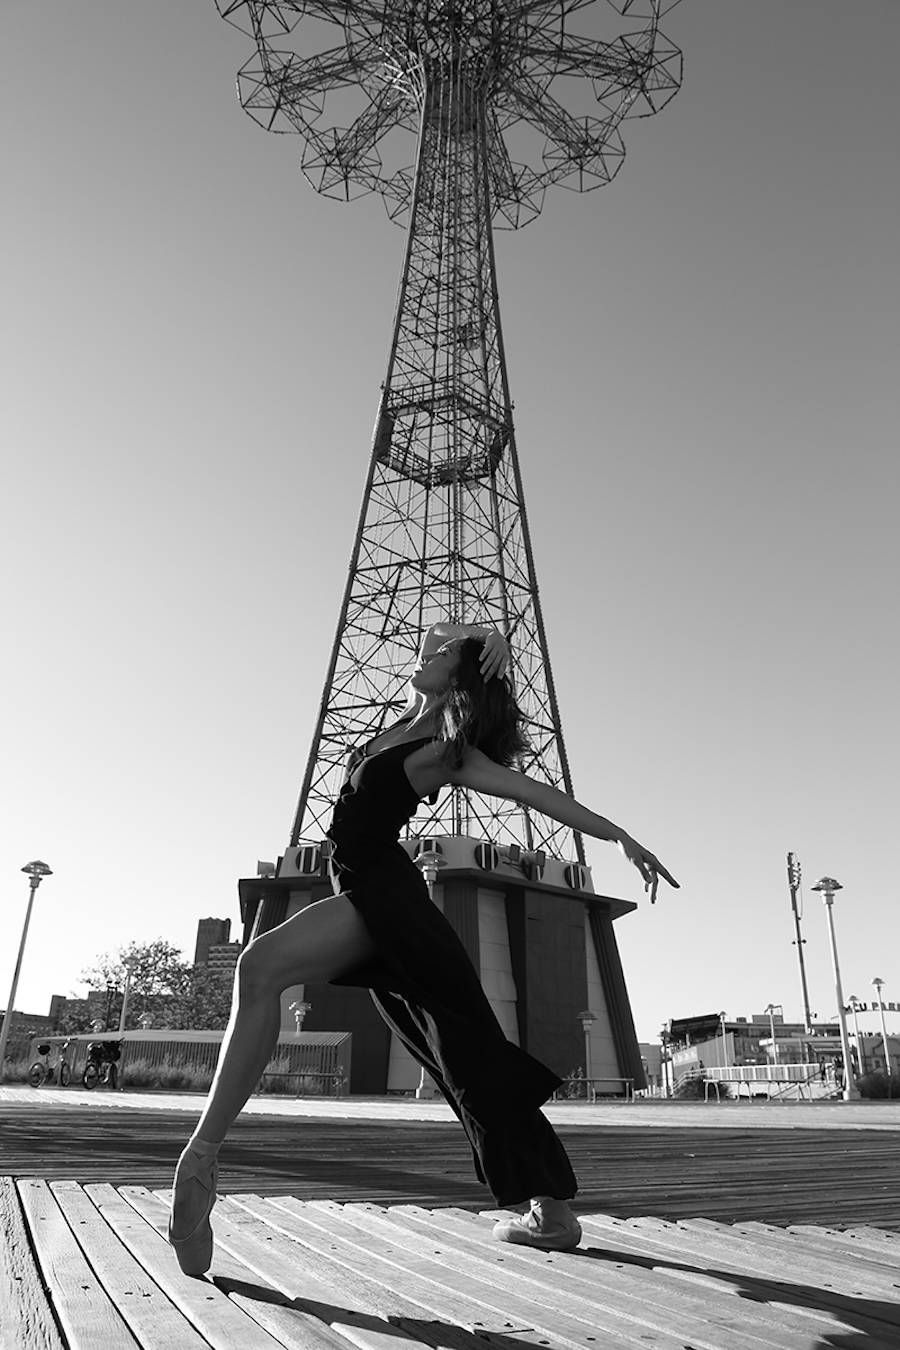 Black and white dancers portraits in new york city dancer newyork coneyisland usa